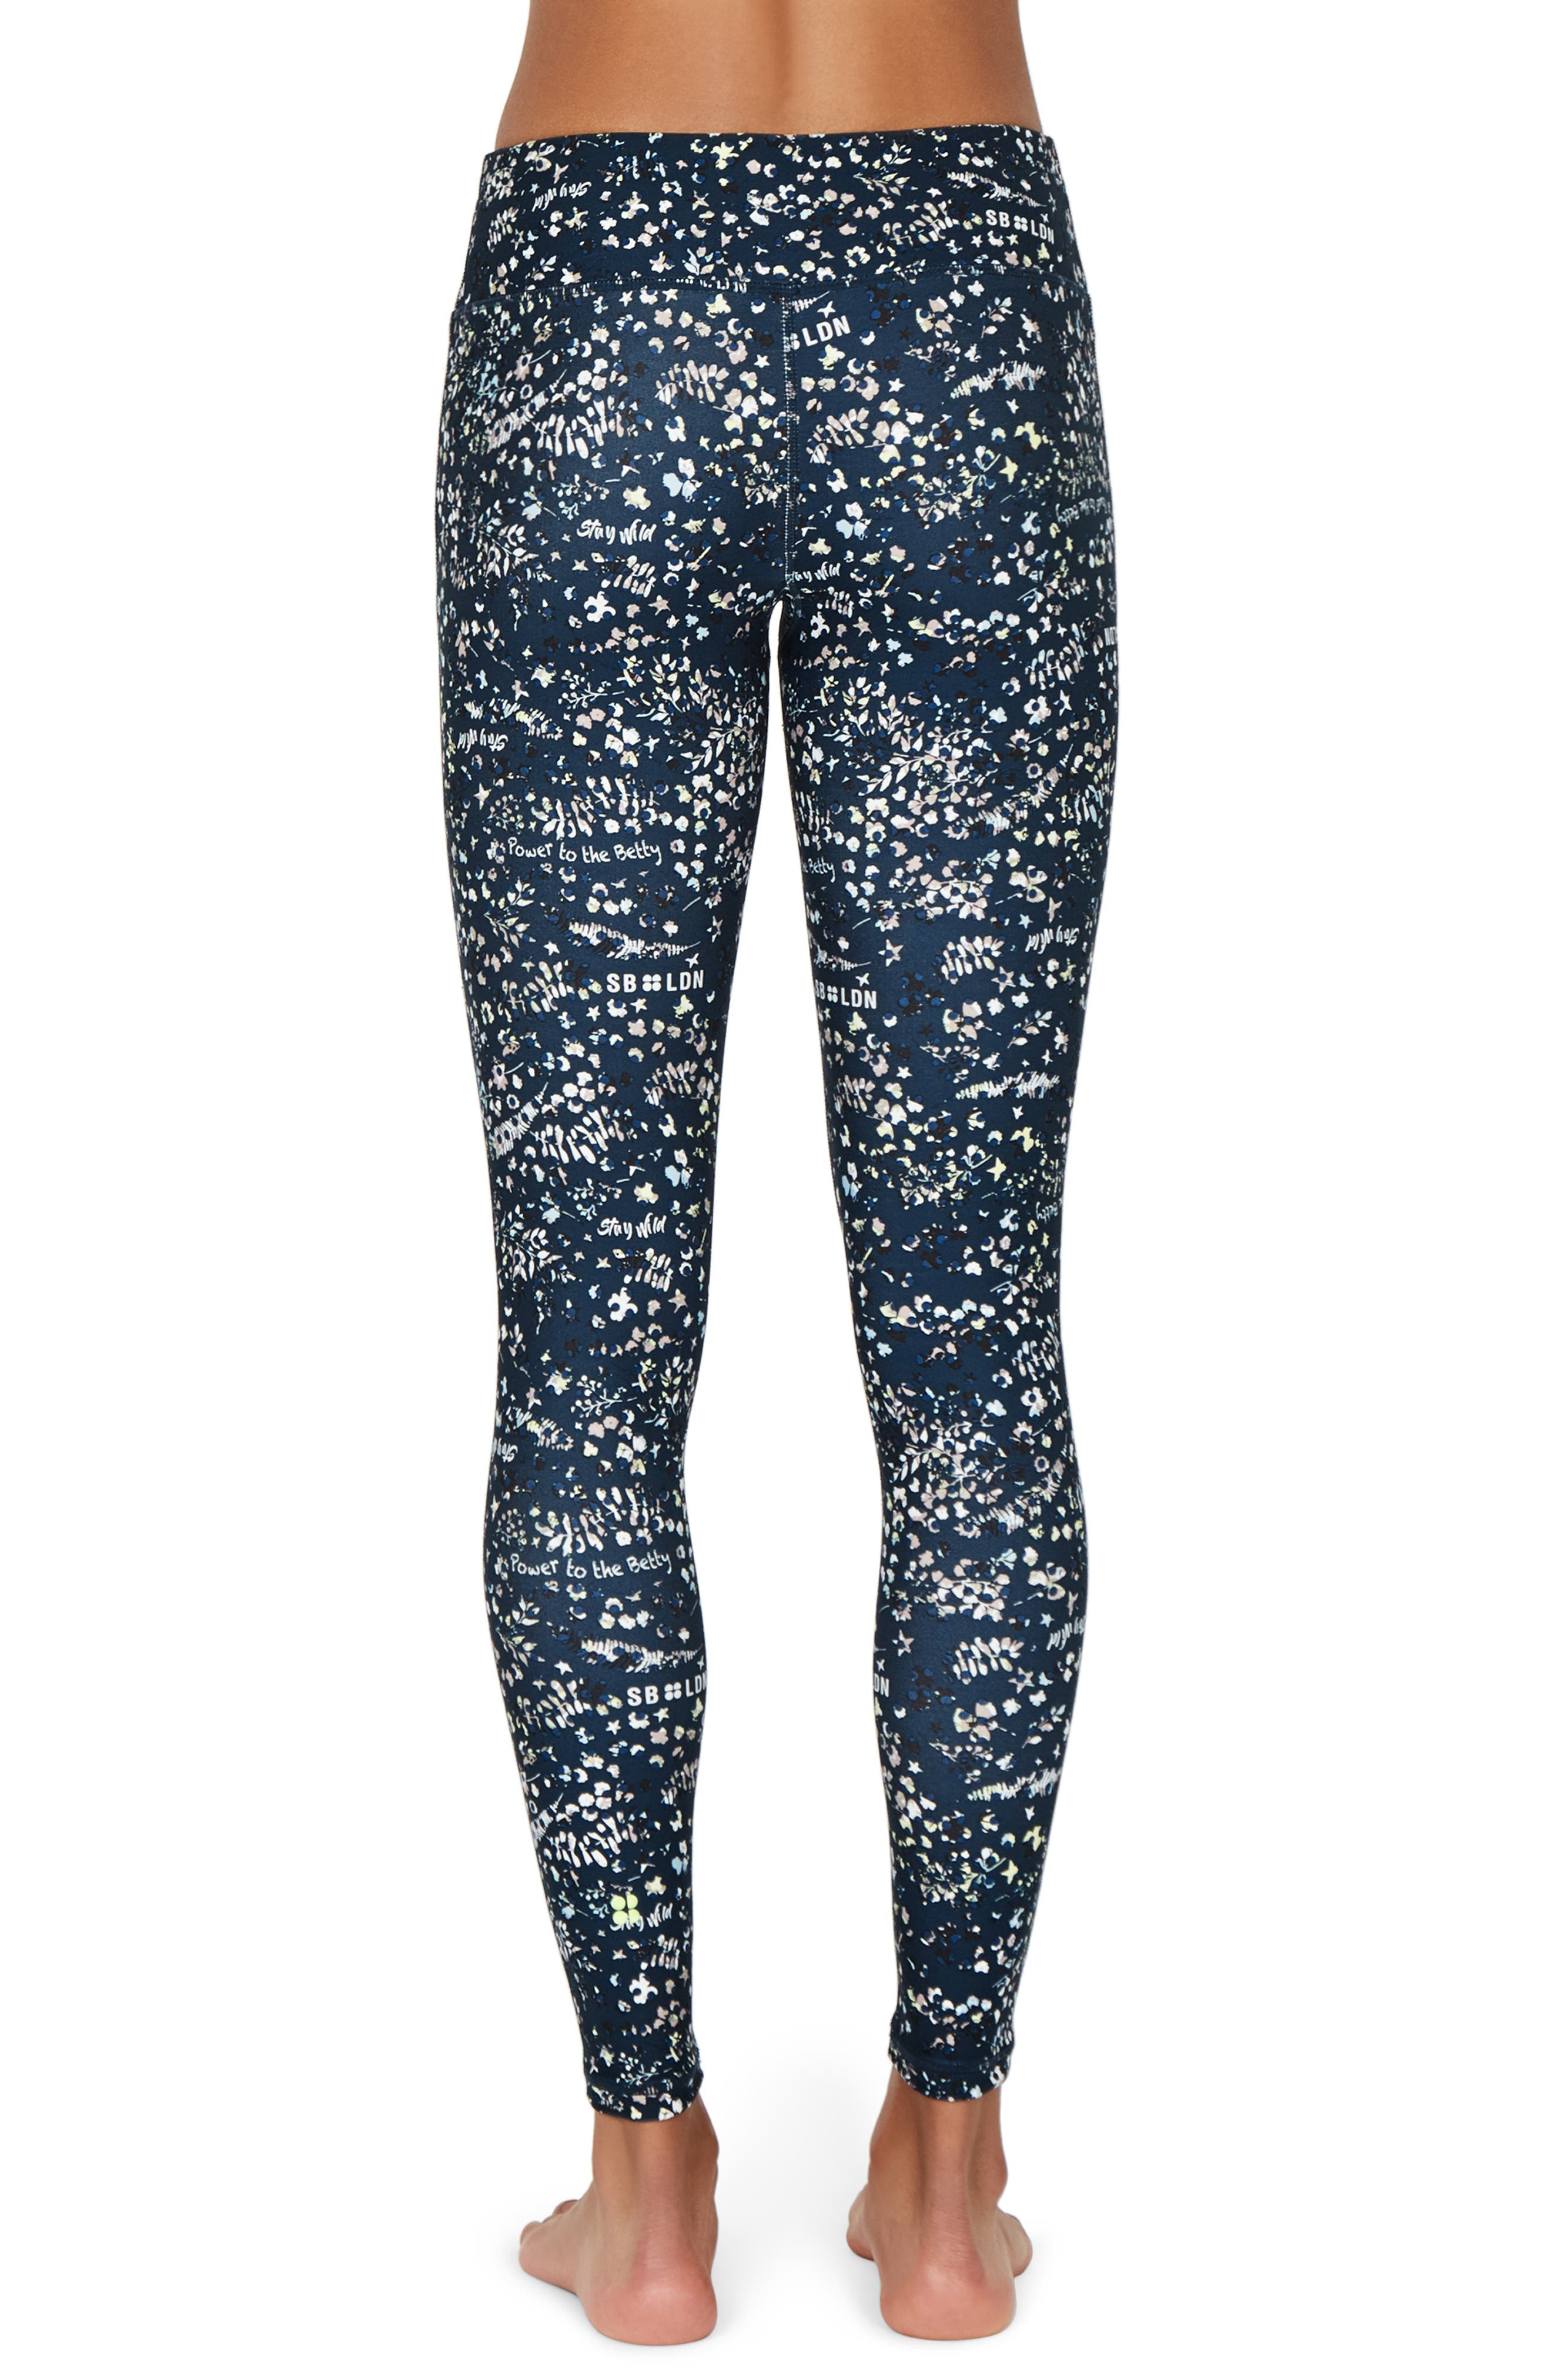 SWEATY BETTY, Contour Leggings, Alternate thumbnail 2, color, BEETLE BLUE STAY WILD PRINT